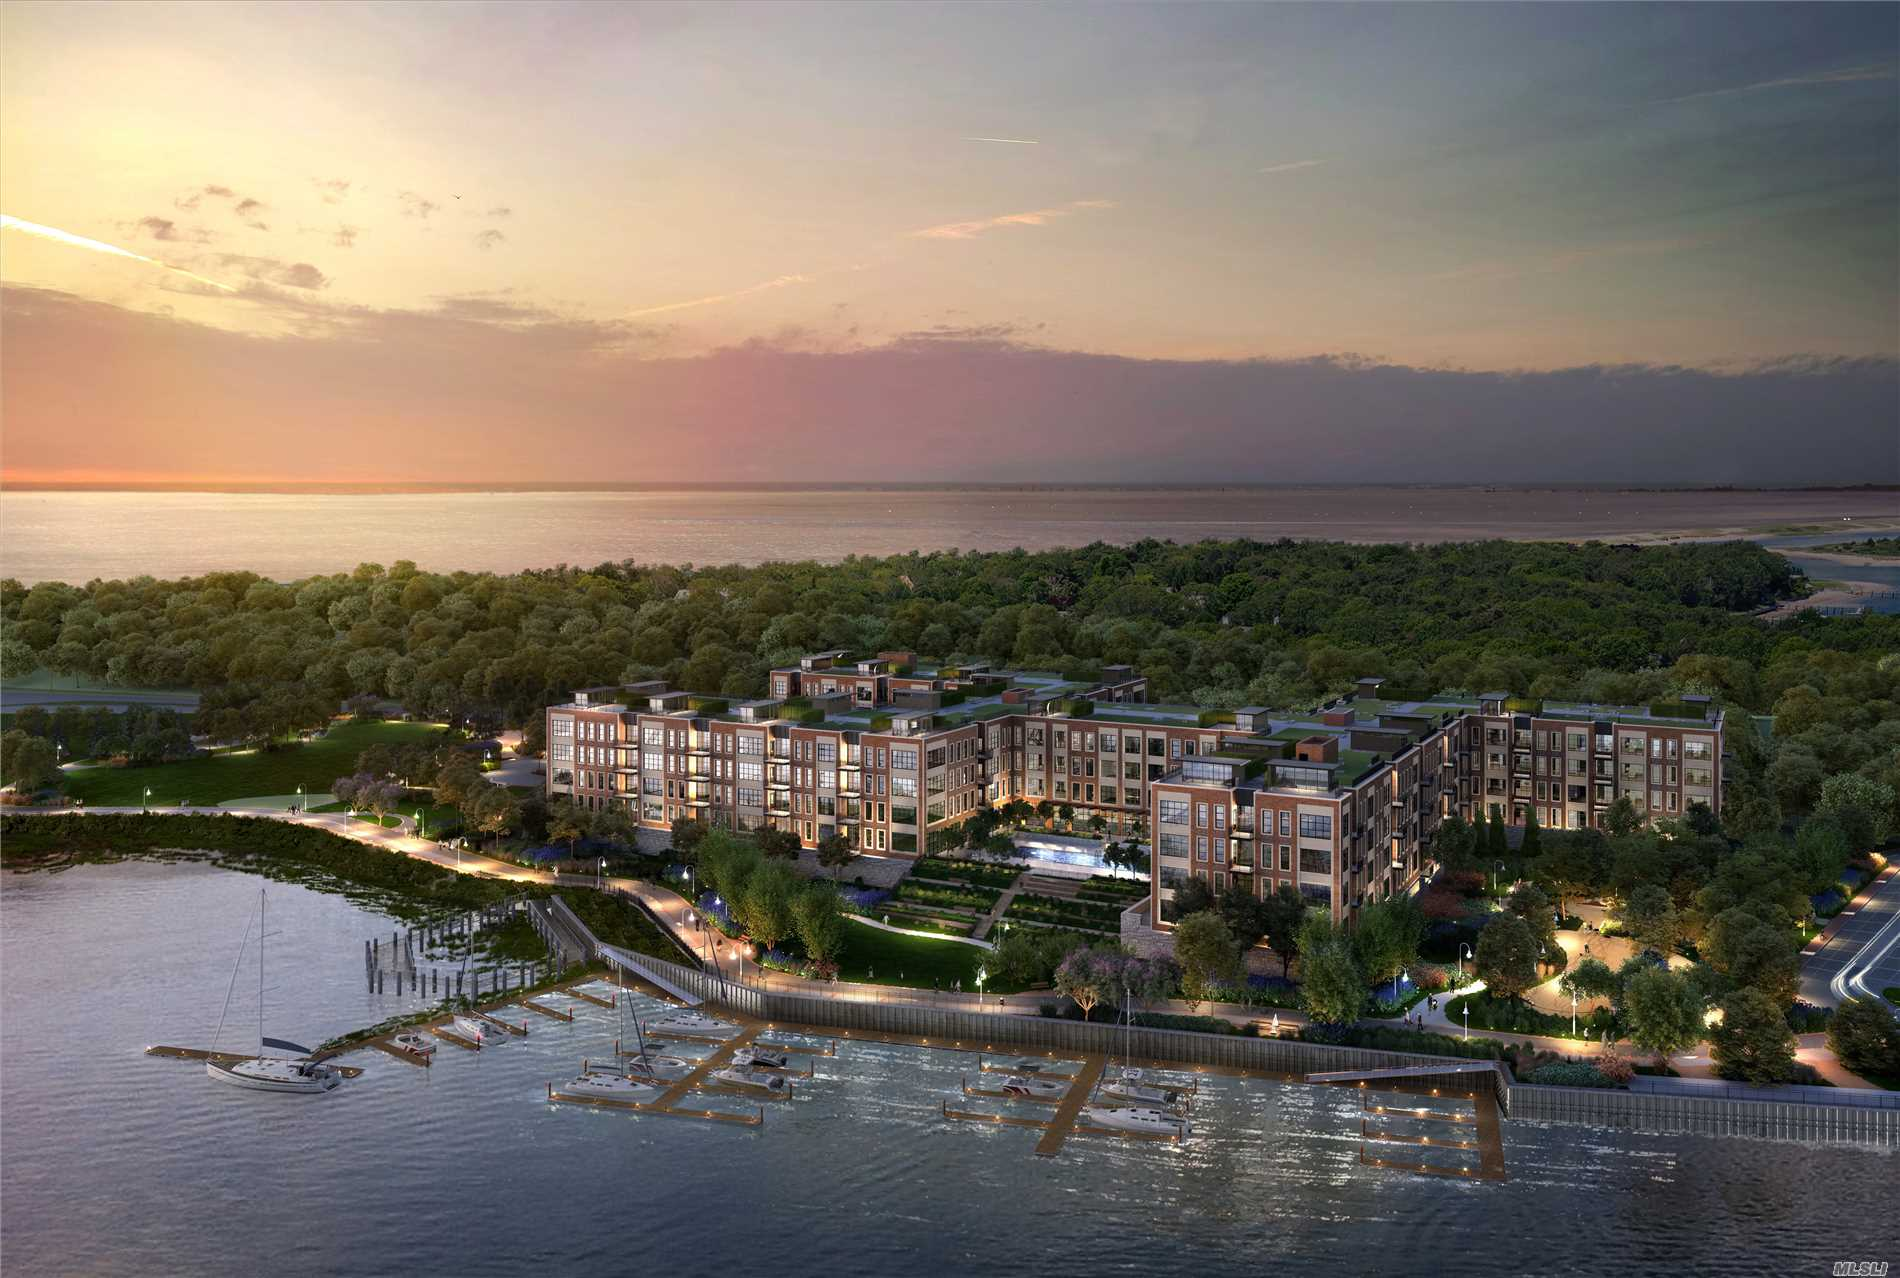 Property for sale at 100 Garvies Point Road # 1008, Glen Cove NY 11542, Glen Cove,  New York 11542